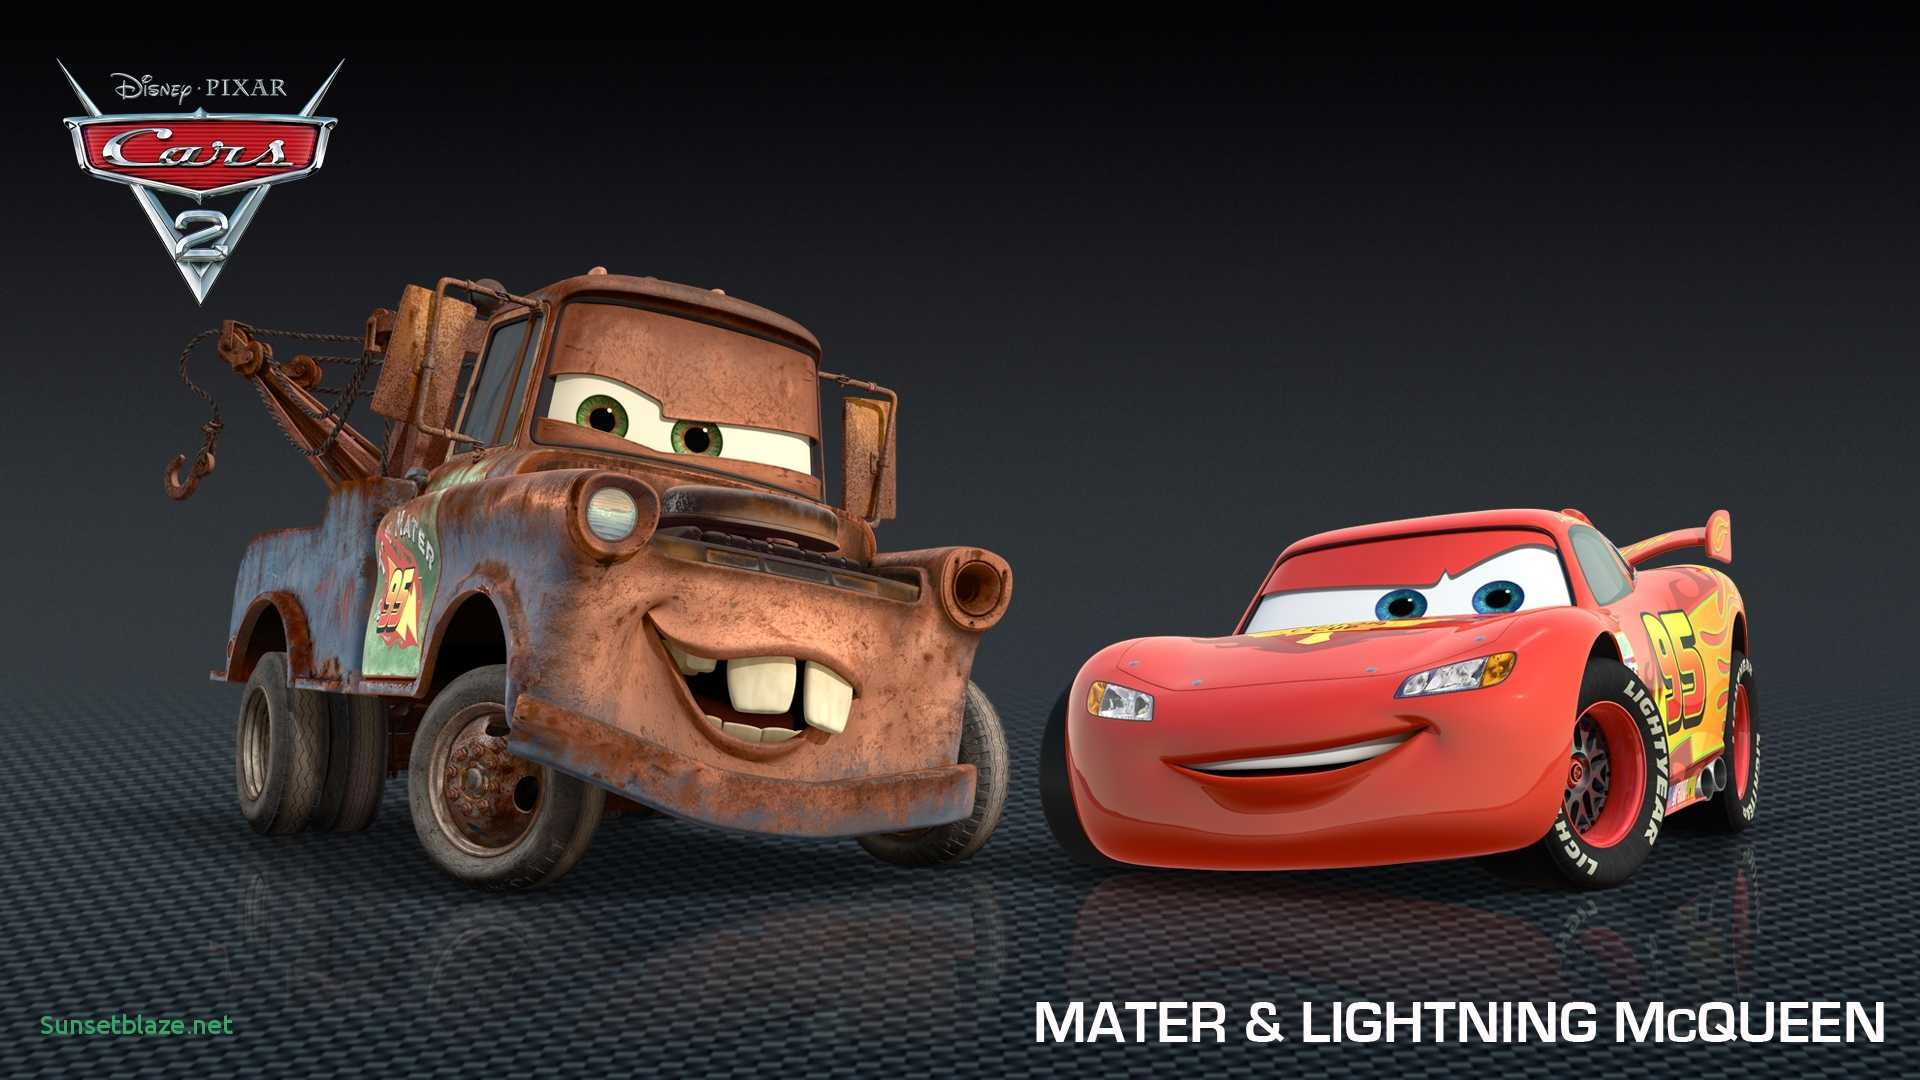 Cars Full Movie Free >> Disney Cars Movie Wallpaper 56 Images